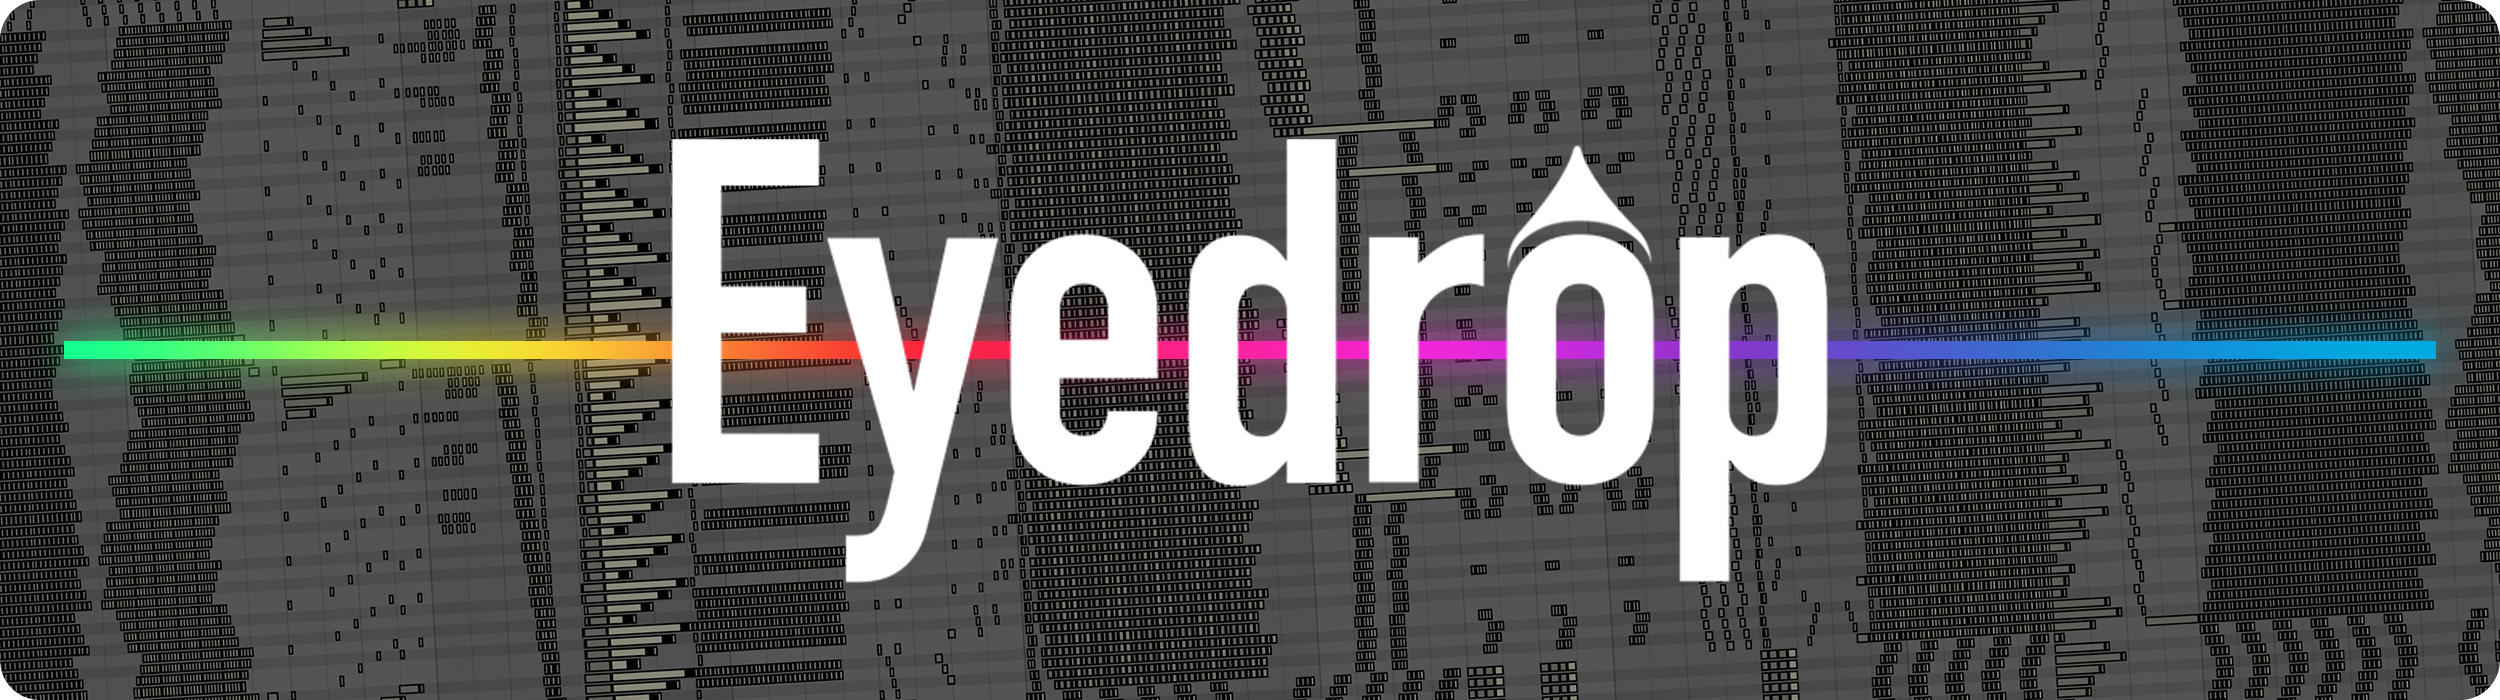 Eyedrop logo website4.png